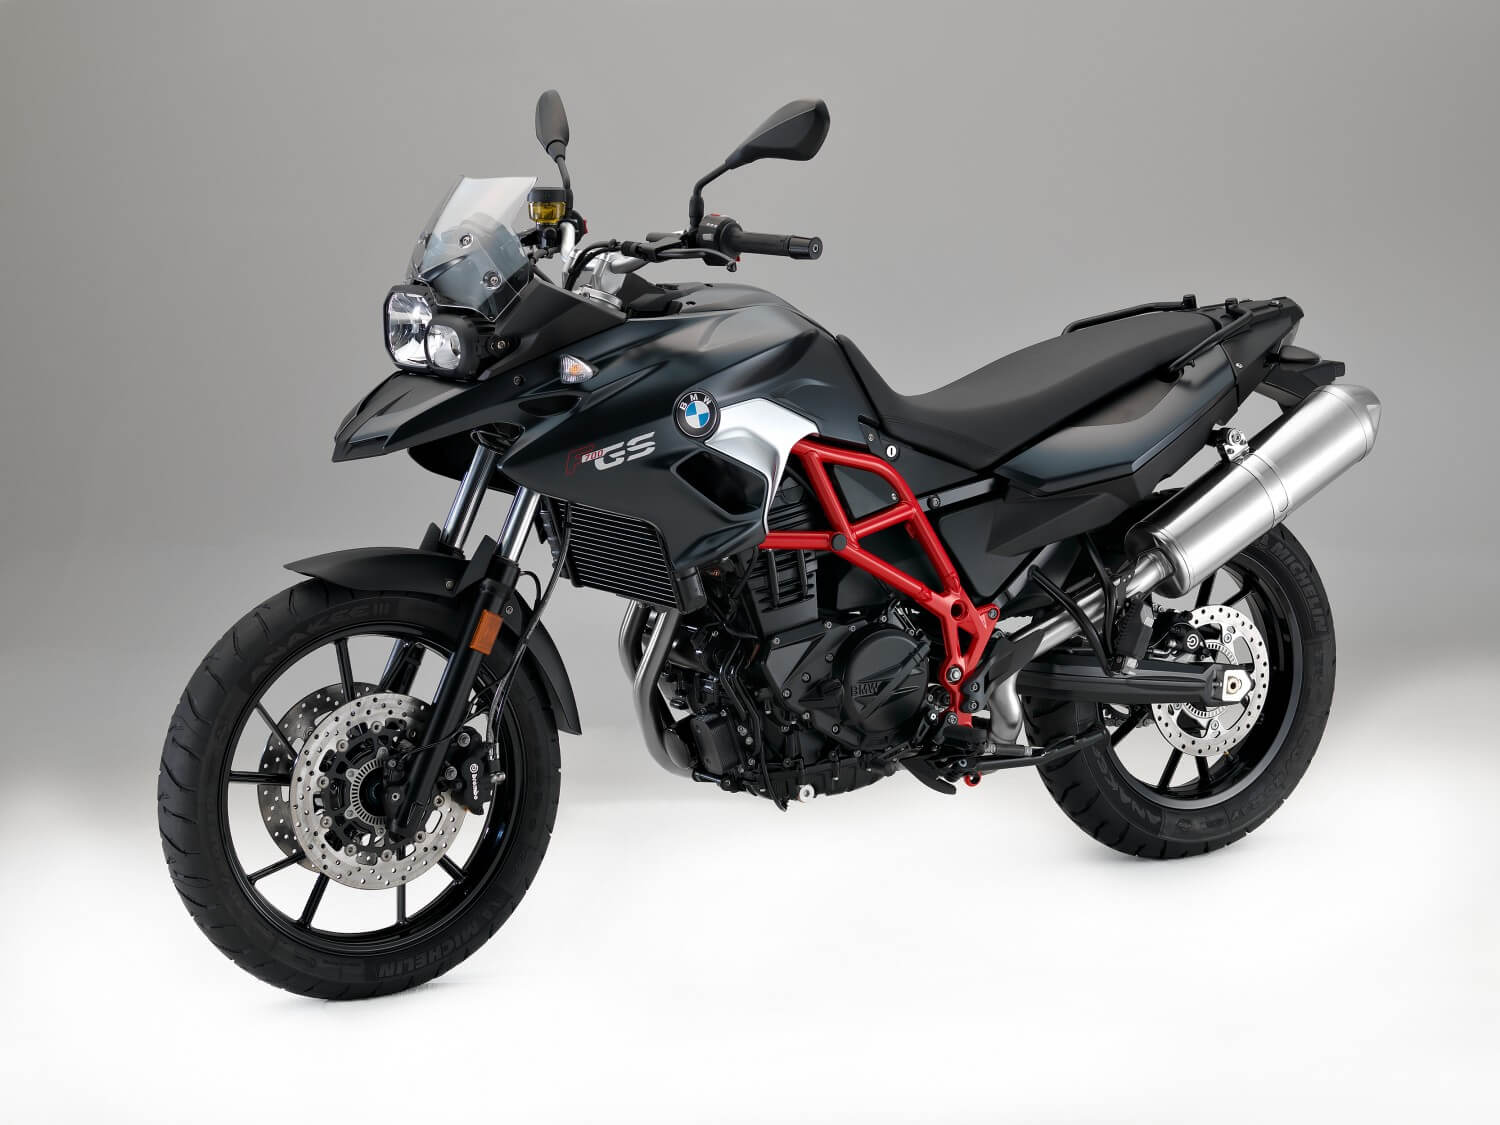 press release the new bmw f 700 gs f 800 gs and f 800 gs adventure drivelife drivelife. Black Bedroom Furniture Sets. Home Design Ideas